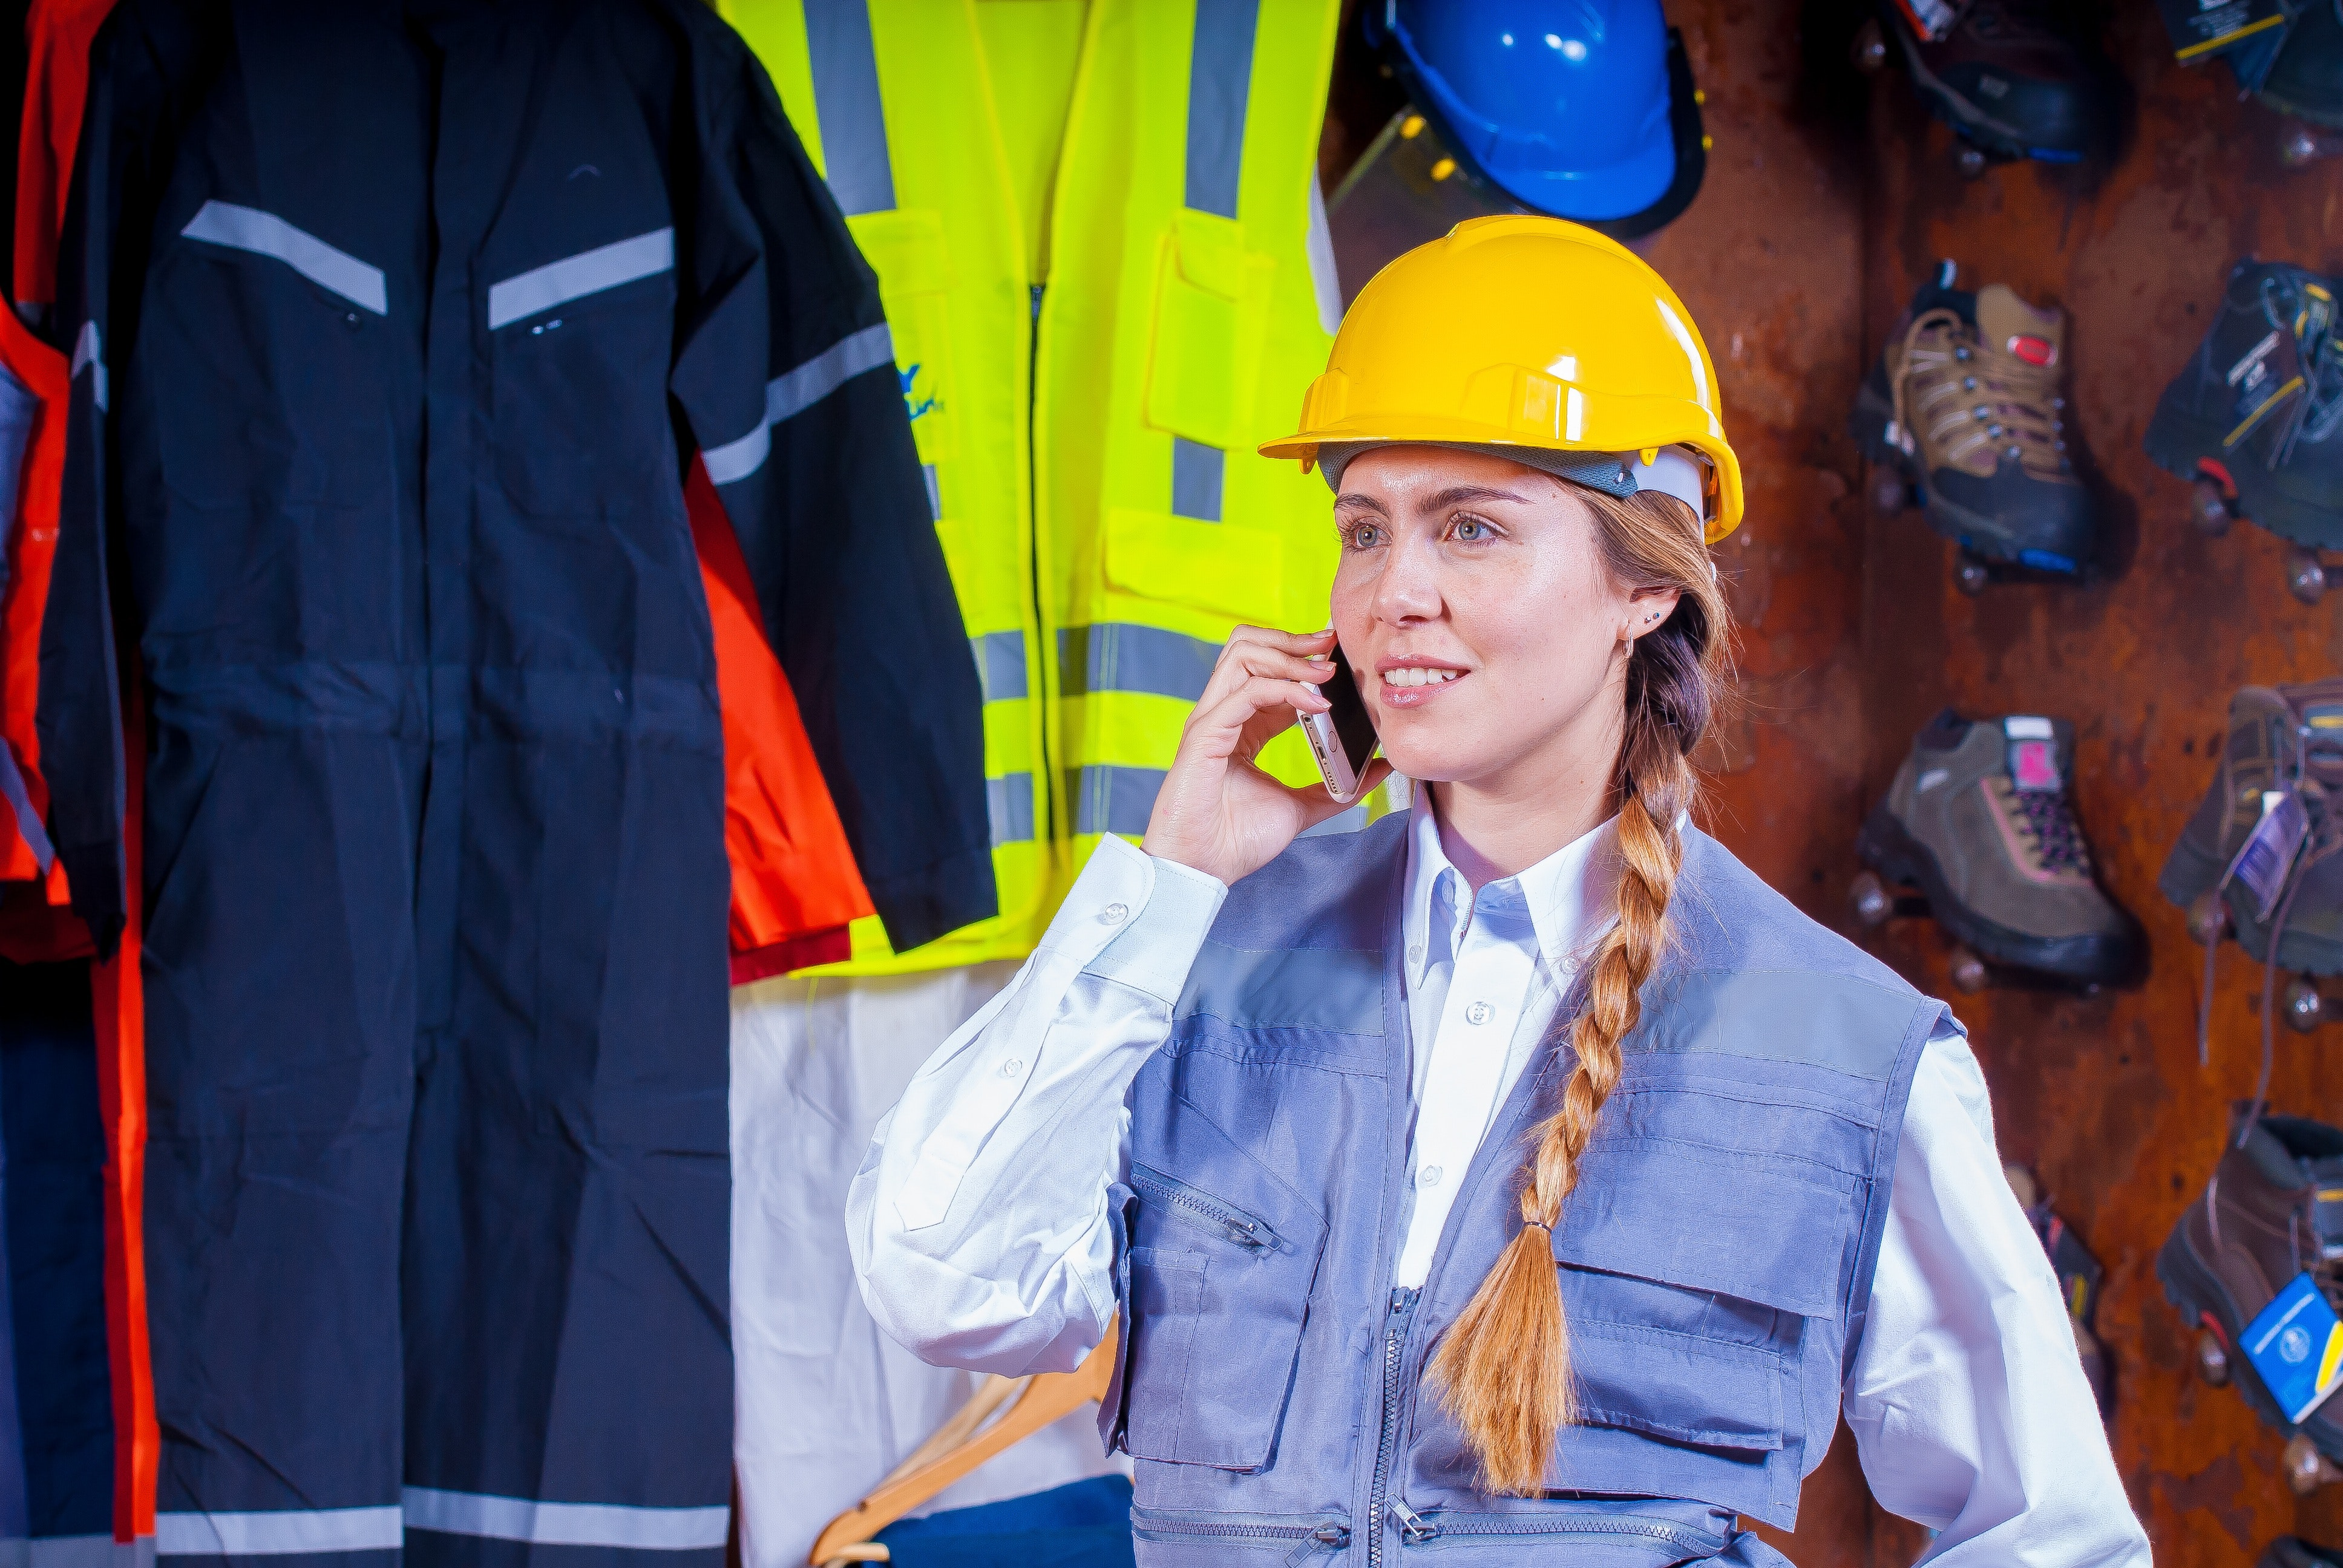 free photo woman in gray vest with yellow hard hat inside room